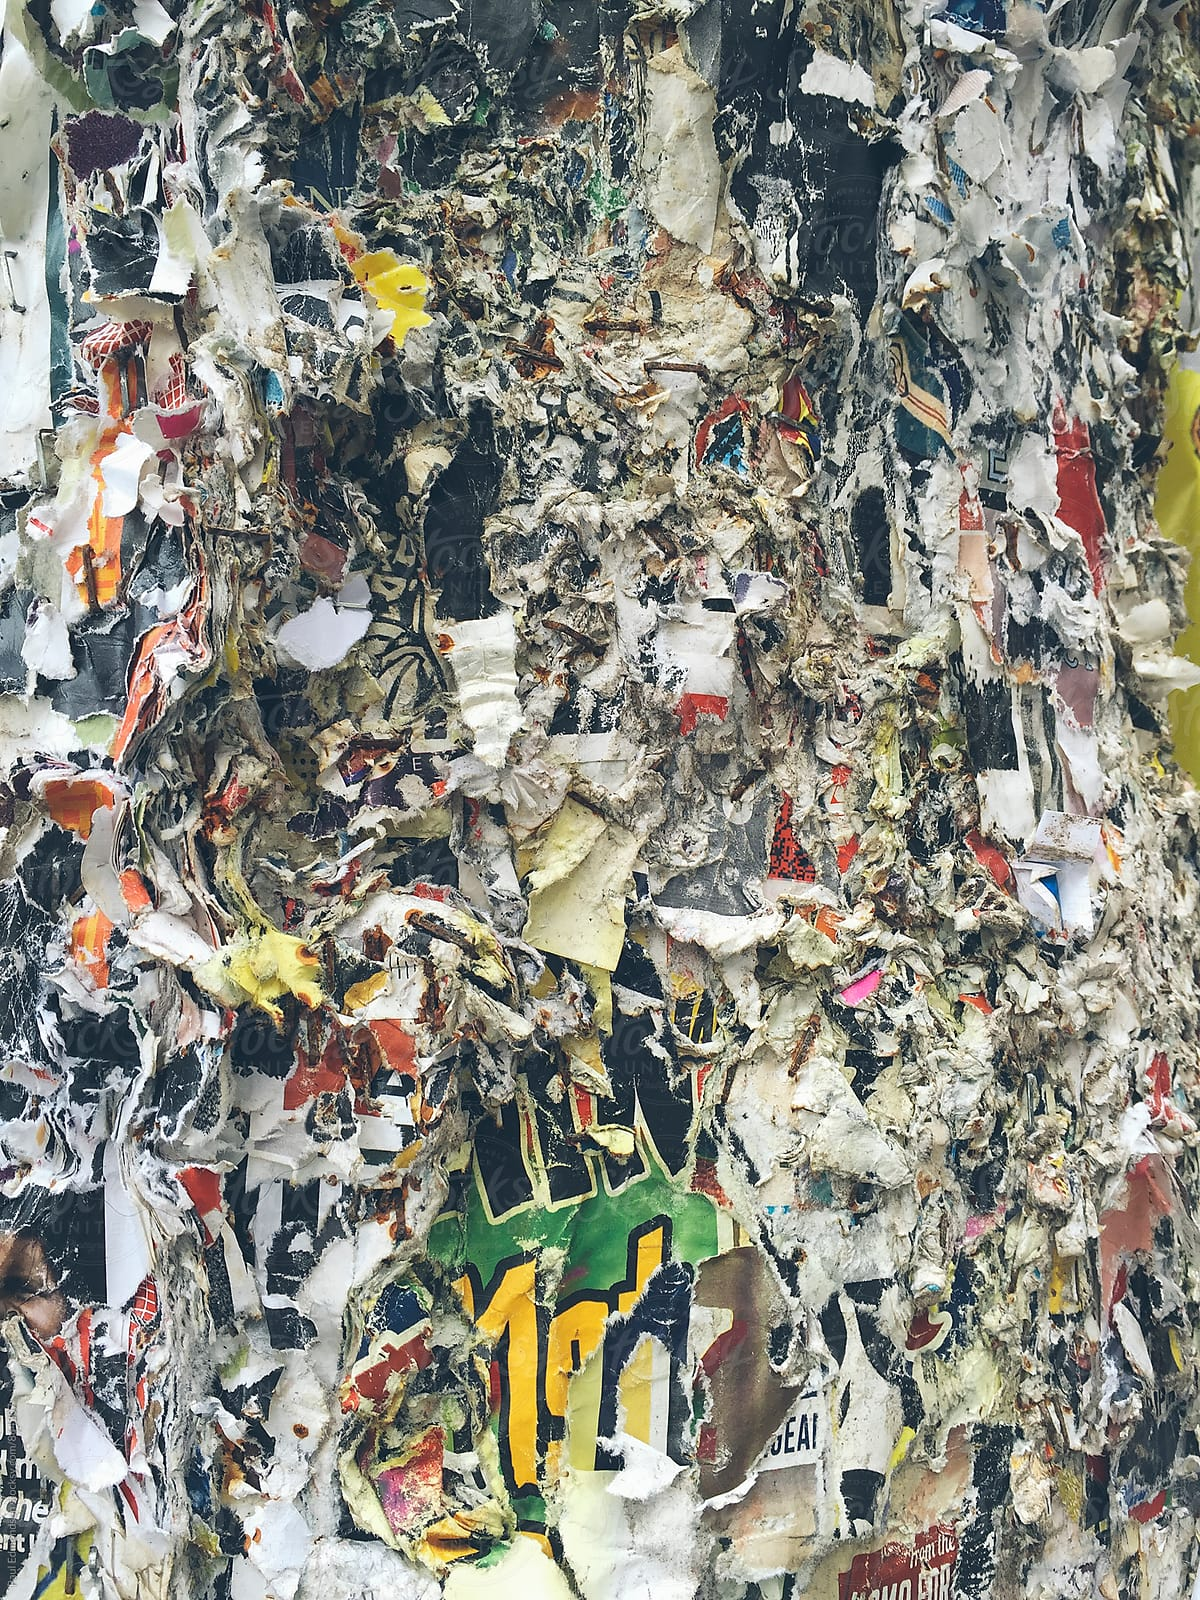 28ce93ce7058 Layer Upon Layer Of Peeling Posters On Telephone Pole